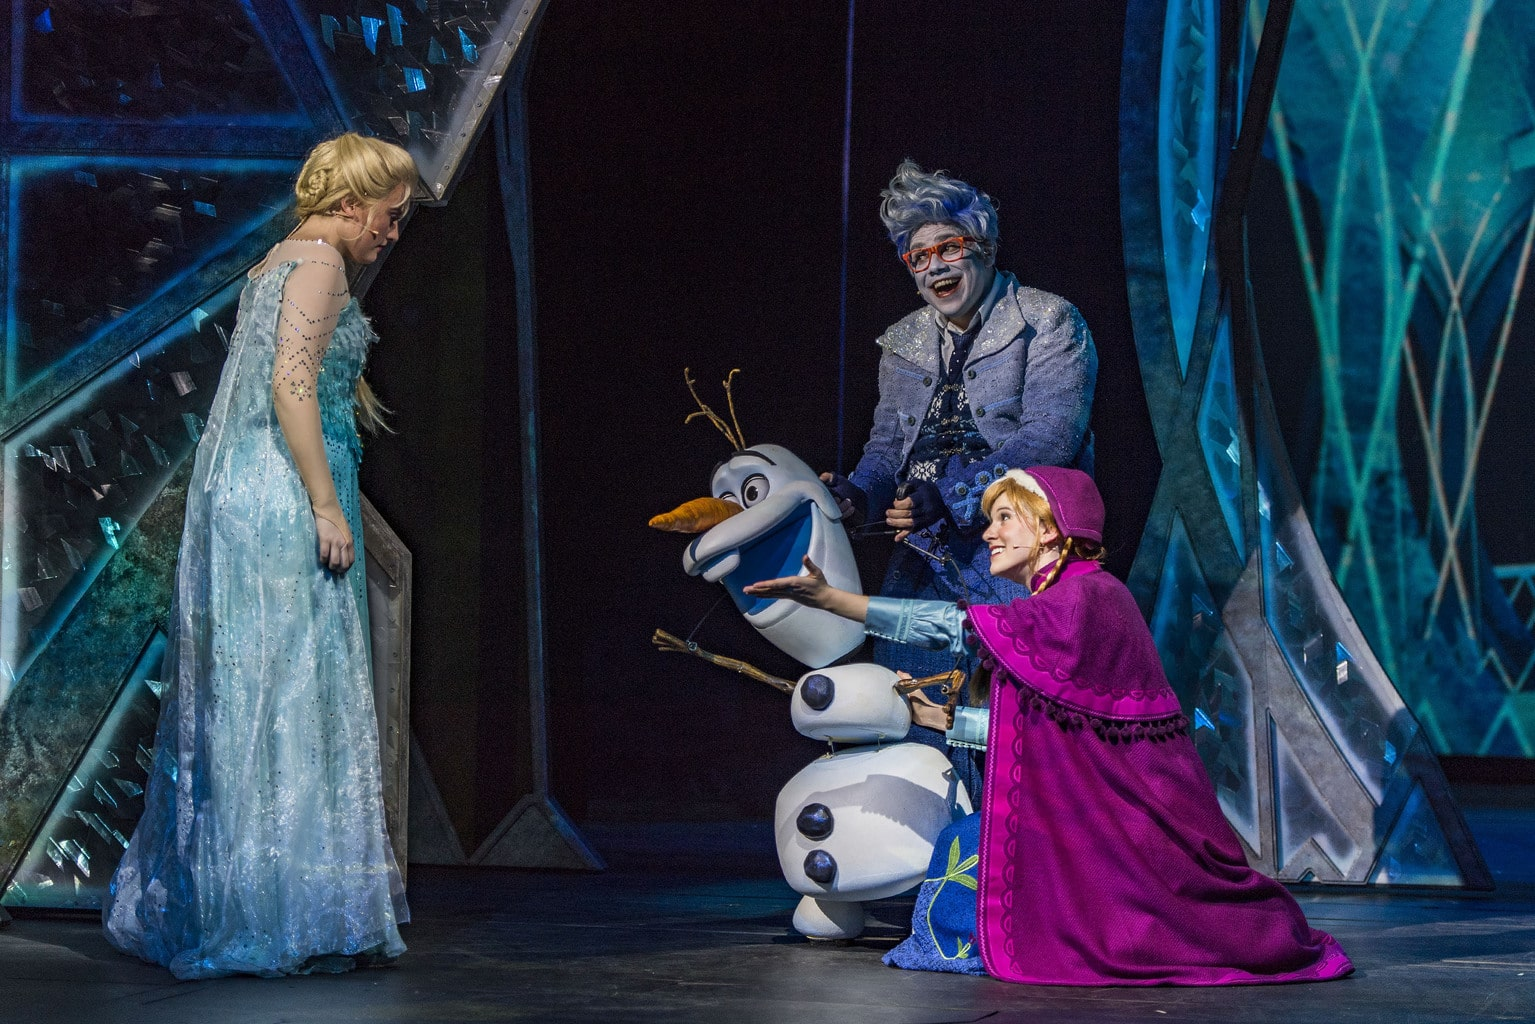 Earlier this month I had the honor of attending Frozen, A Musical Spectacular aboard the Disney Wonder. I have to say I was amazed!